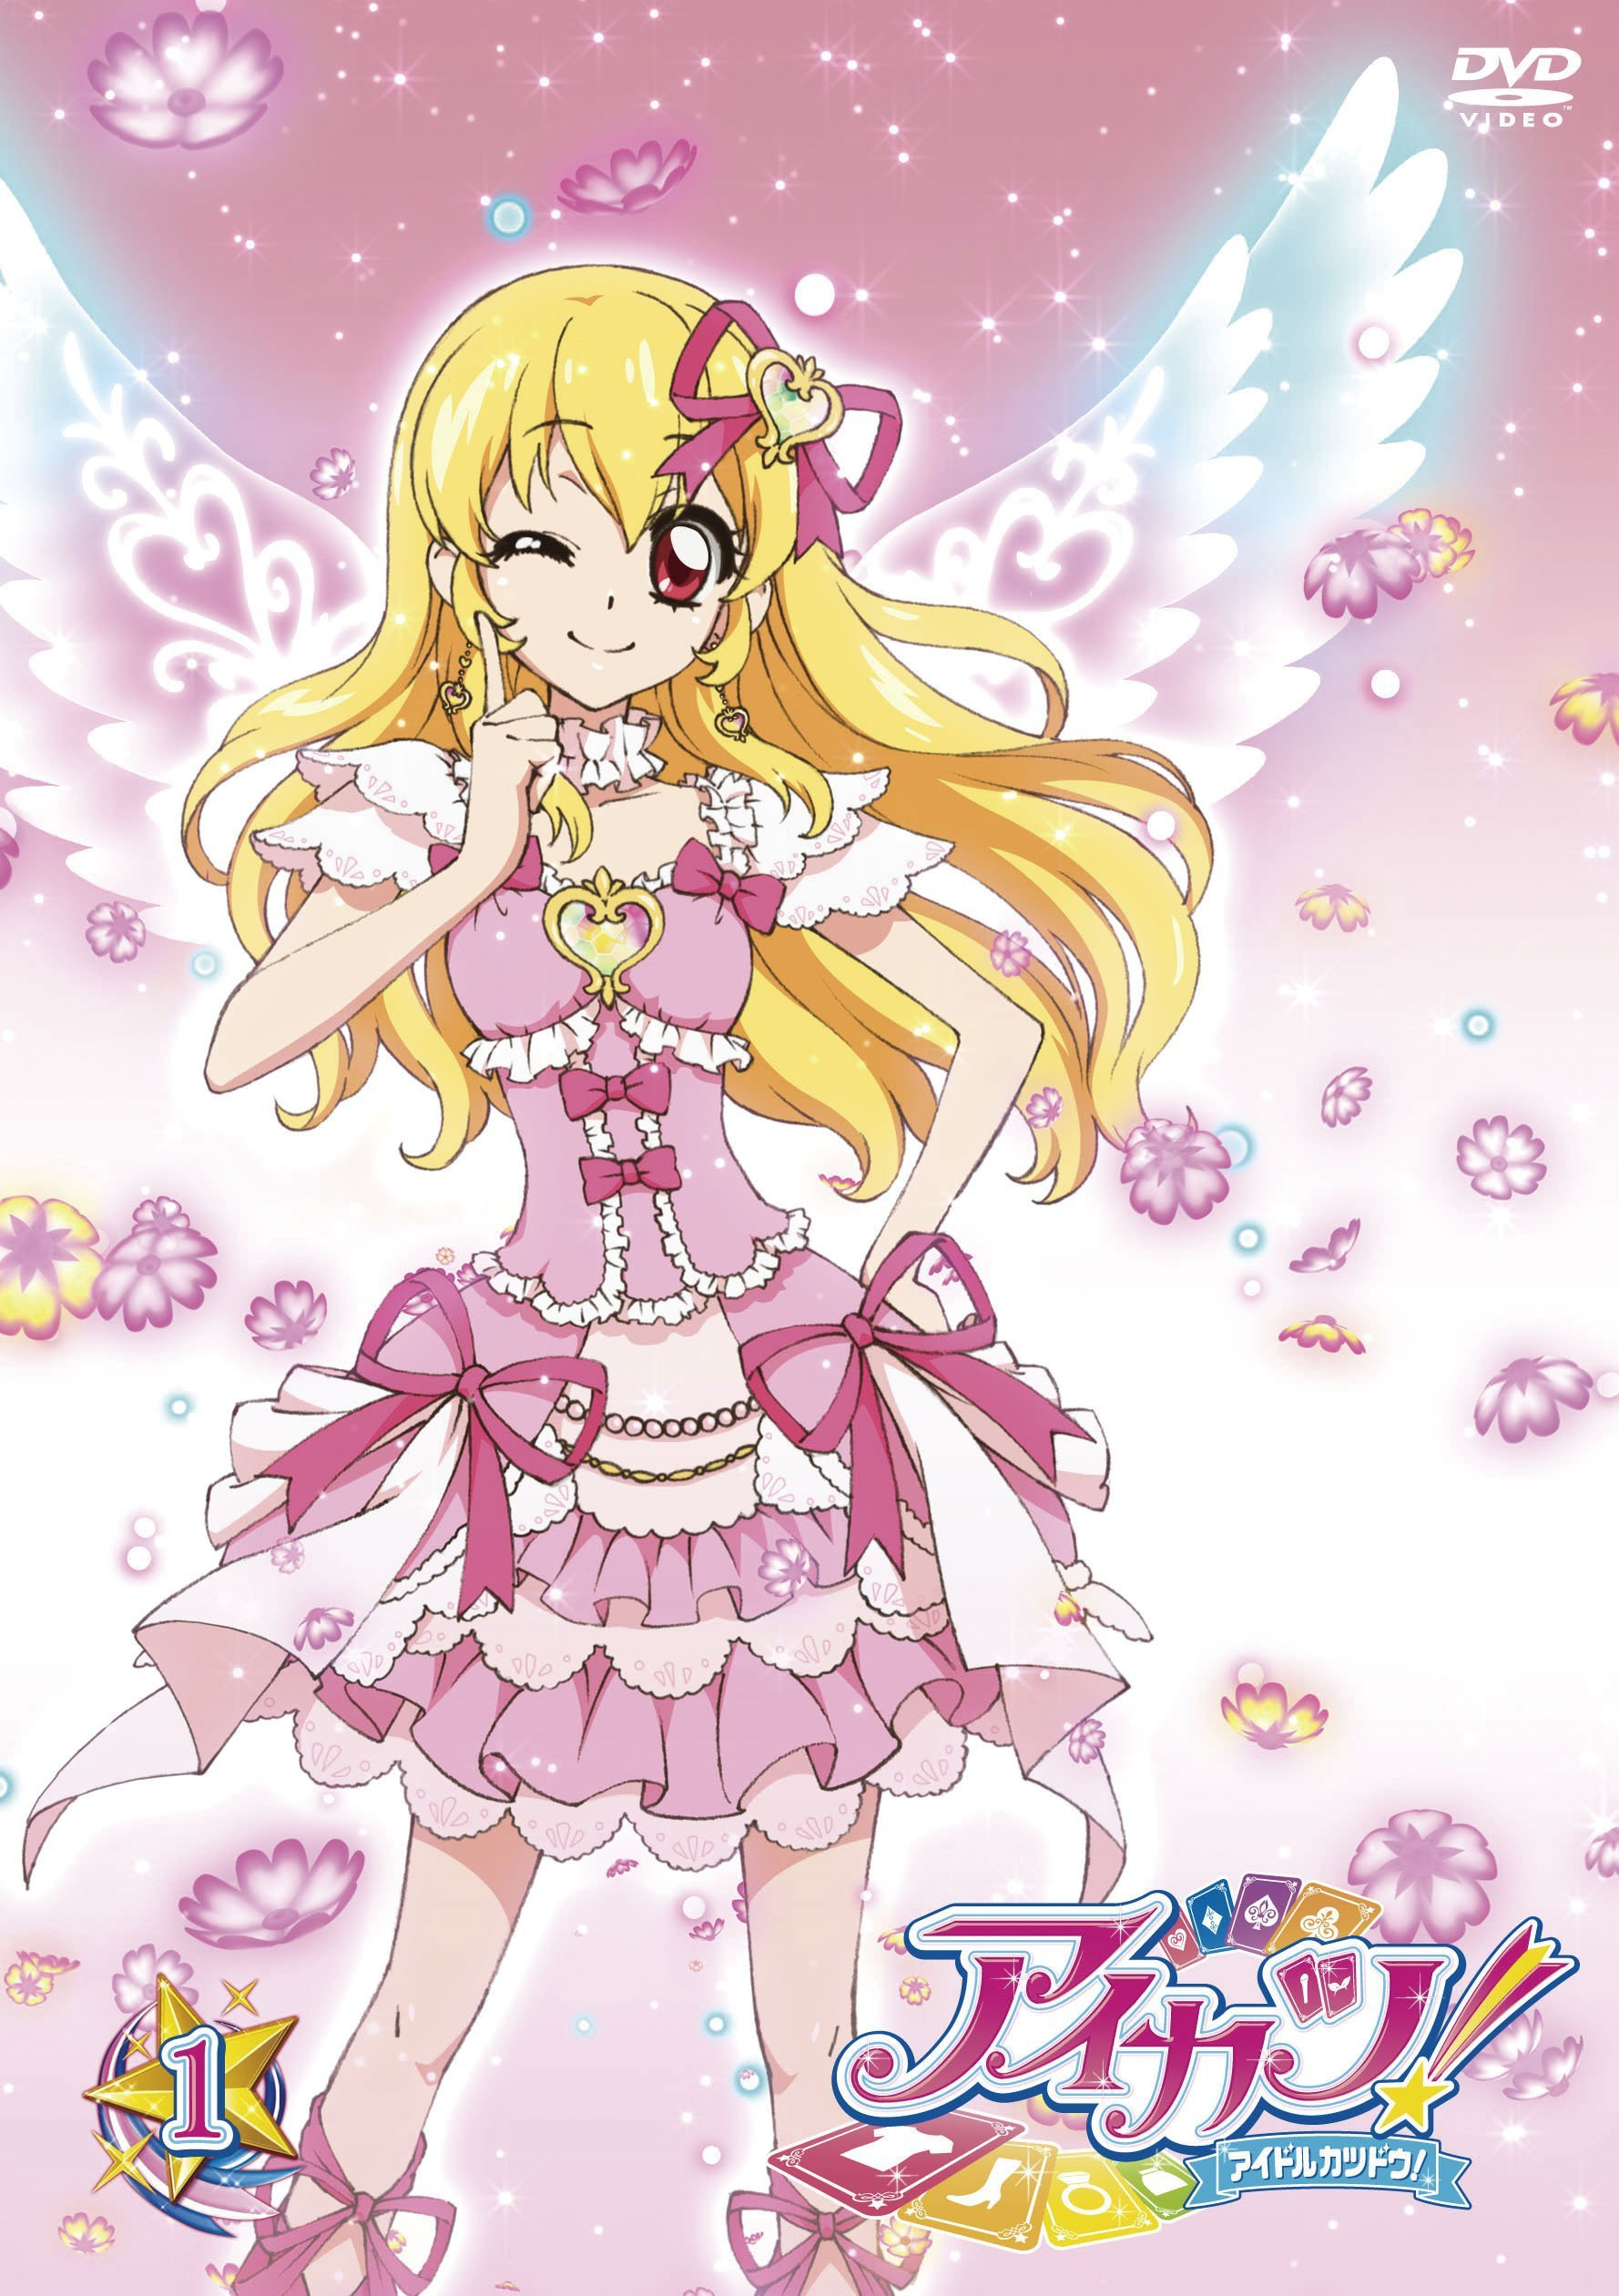 Aikatsu! Franchise DVD and BD Releases